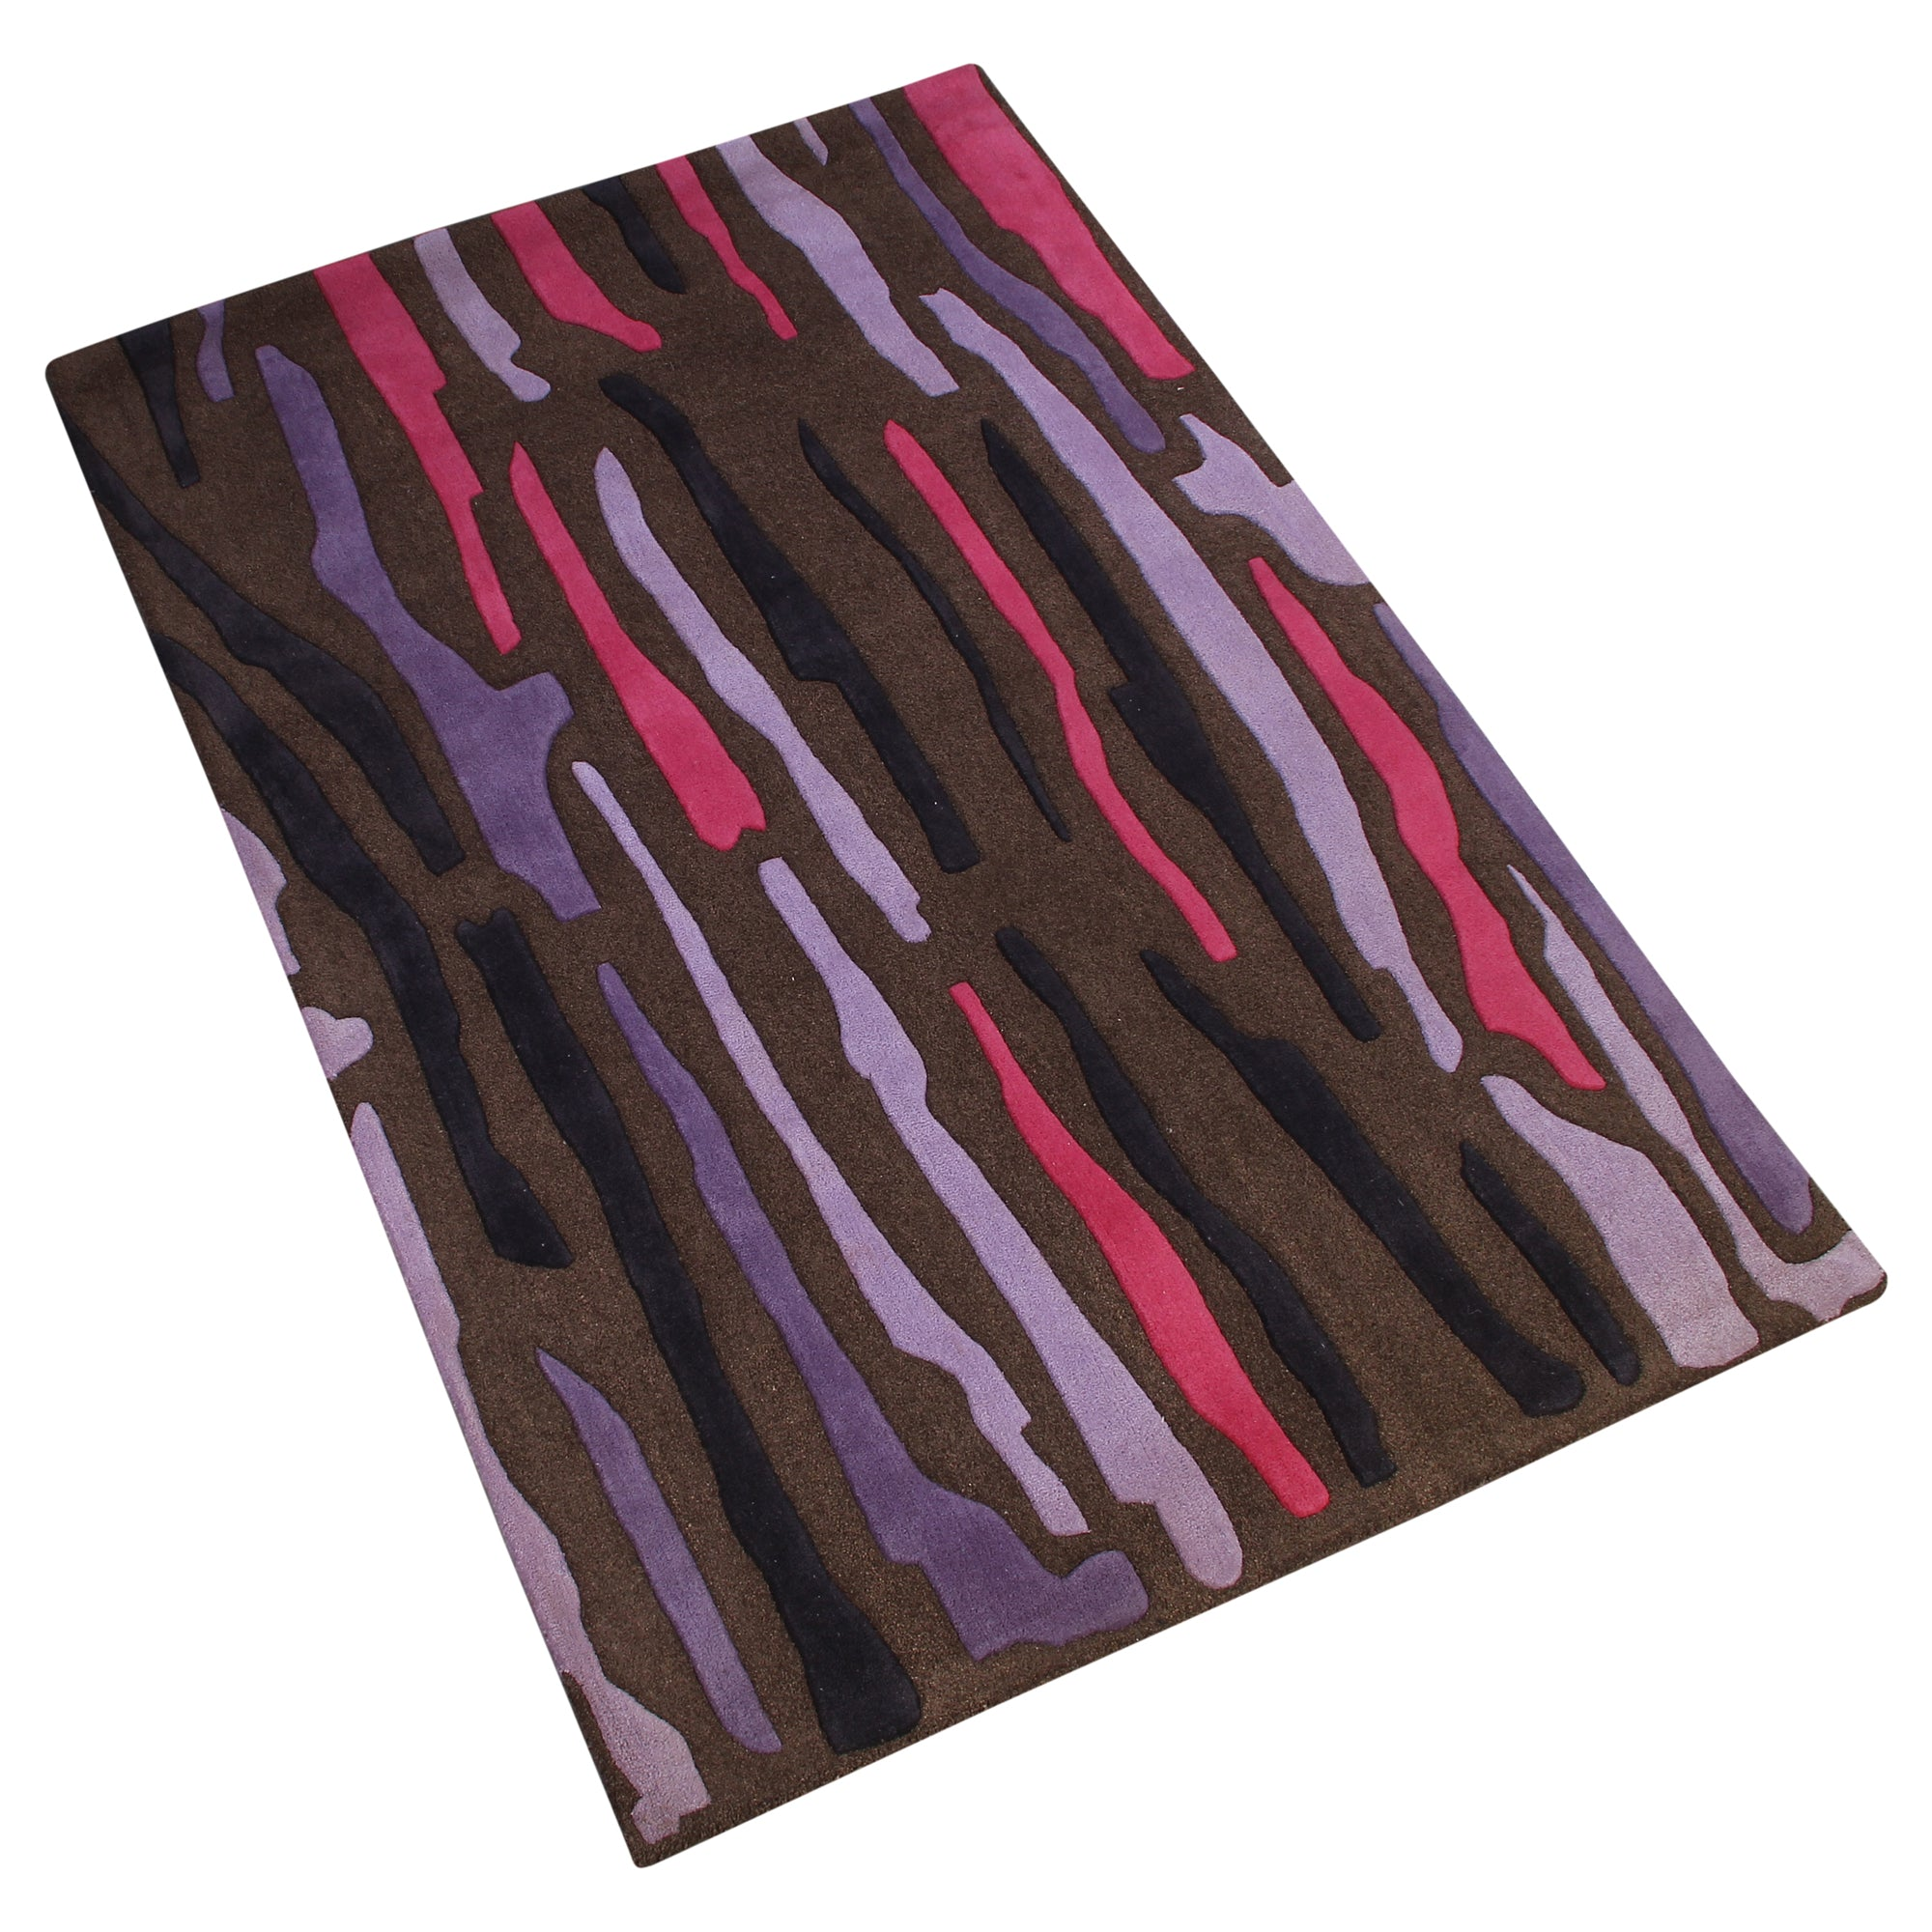 BROWN ABSTRACT MULTI COLOR HAND TUFTED RUG